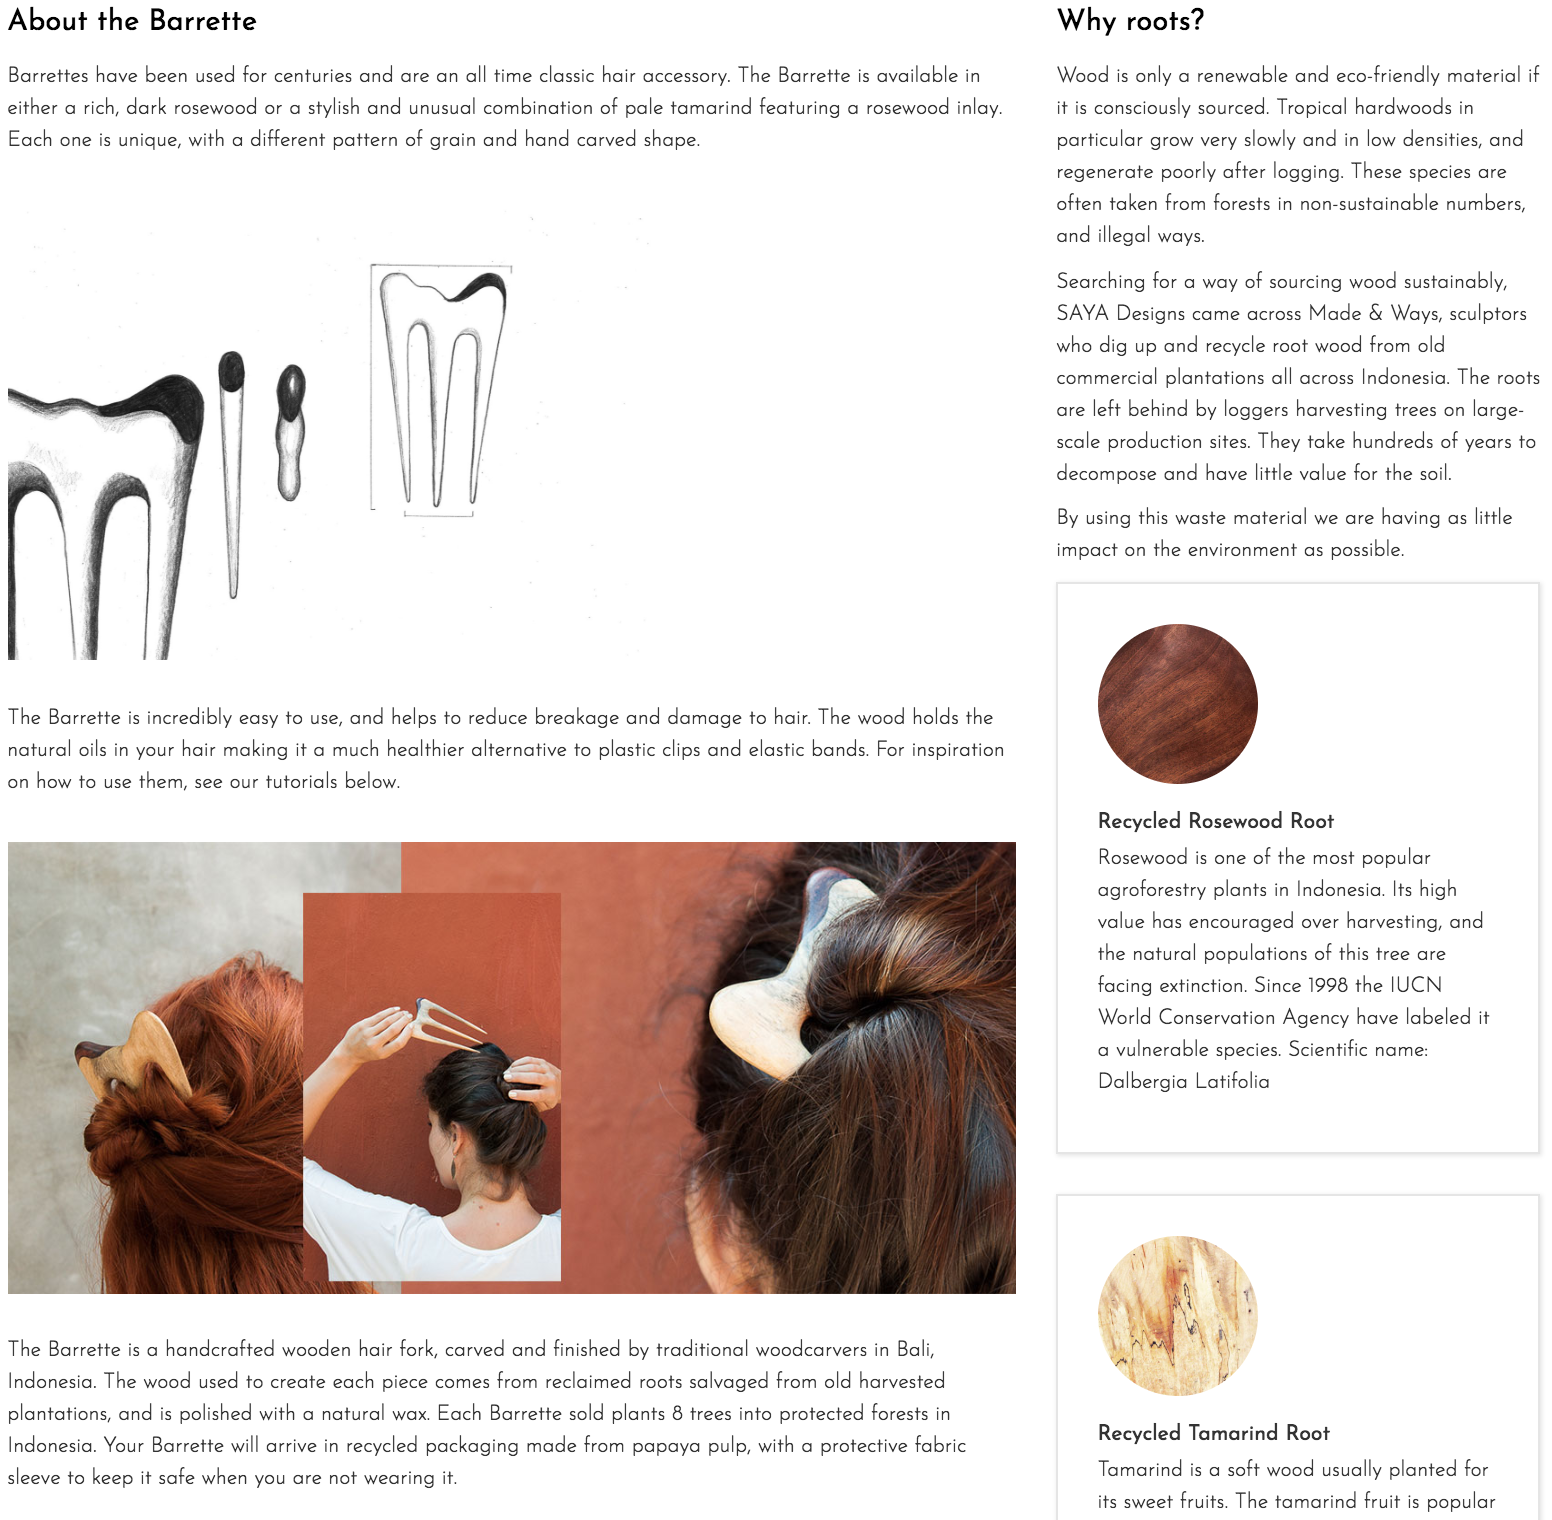 About the Barrette Hair Fork